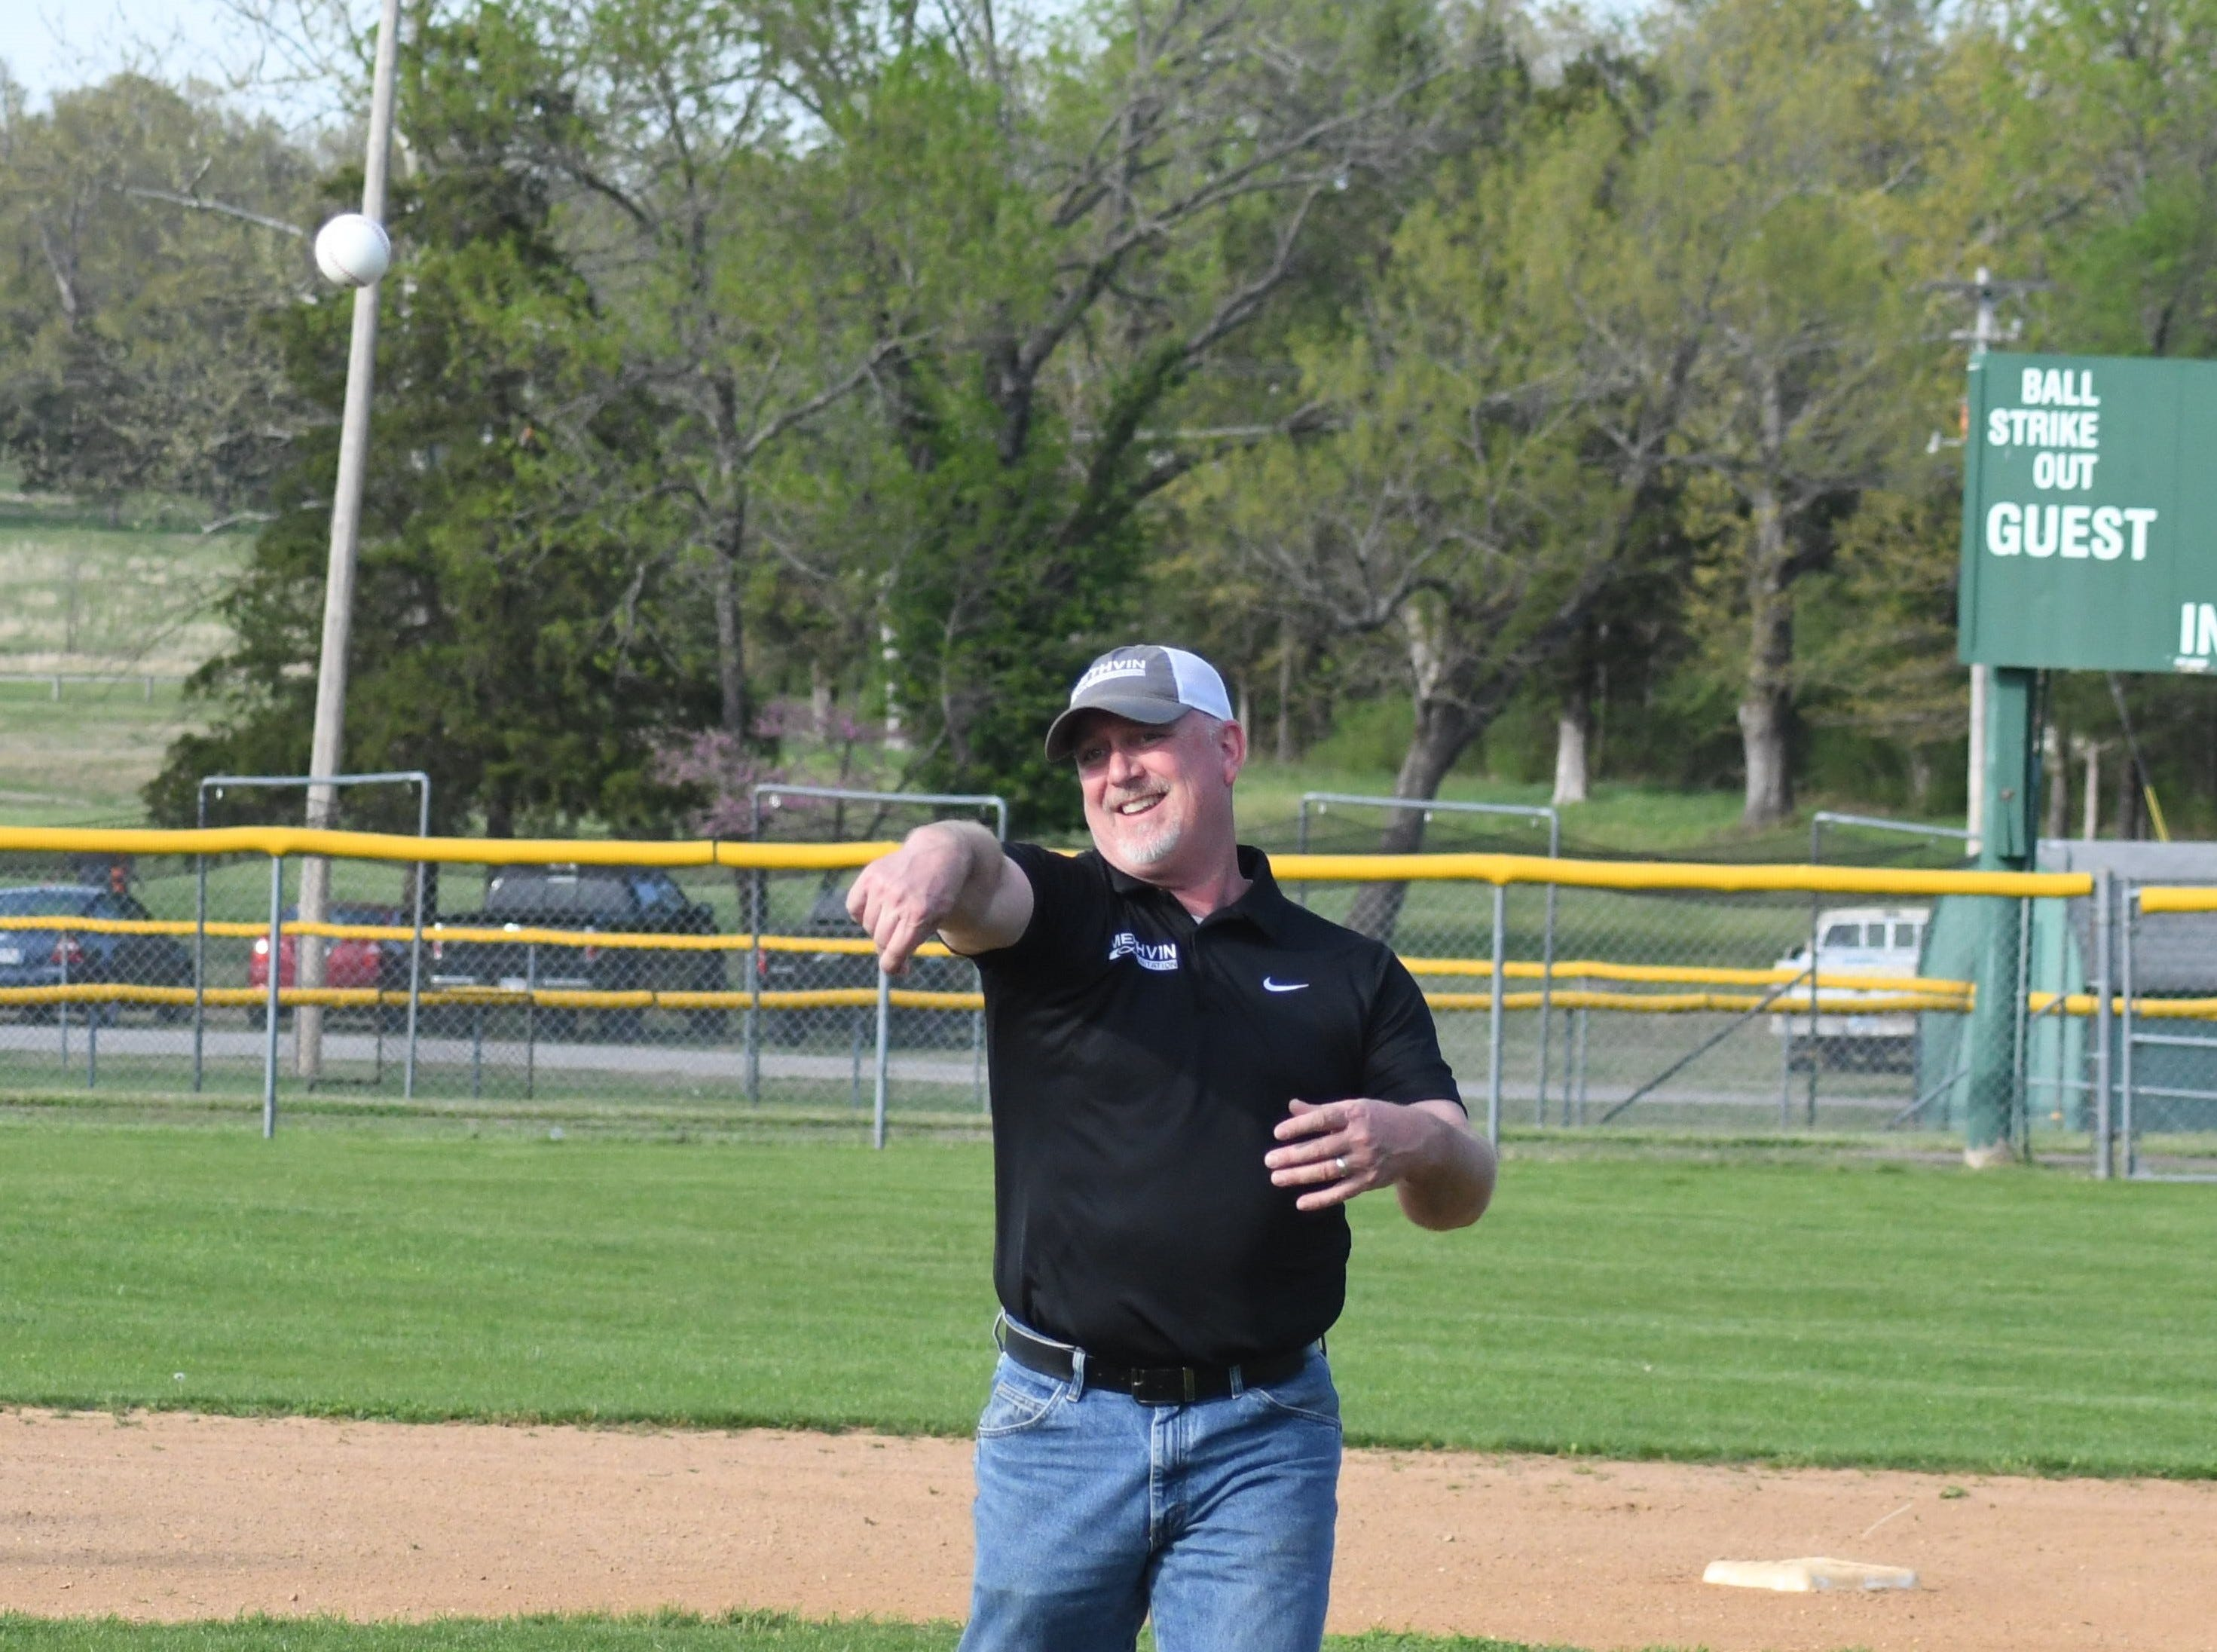 Methvin Sanitation operations manager Jay Mathis delivers the first pitch Tuesday evening at Methvin Sanitation Field at Clysta Willett Park.